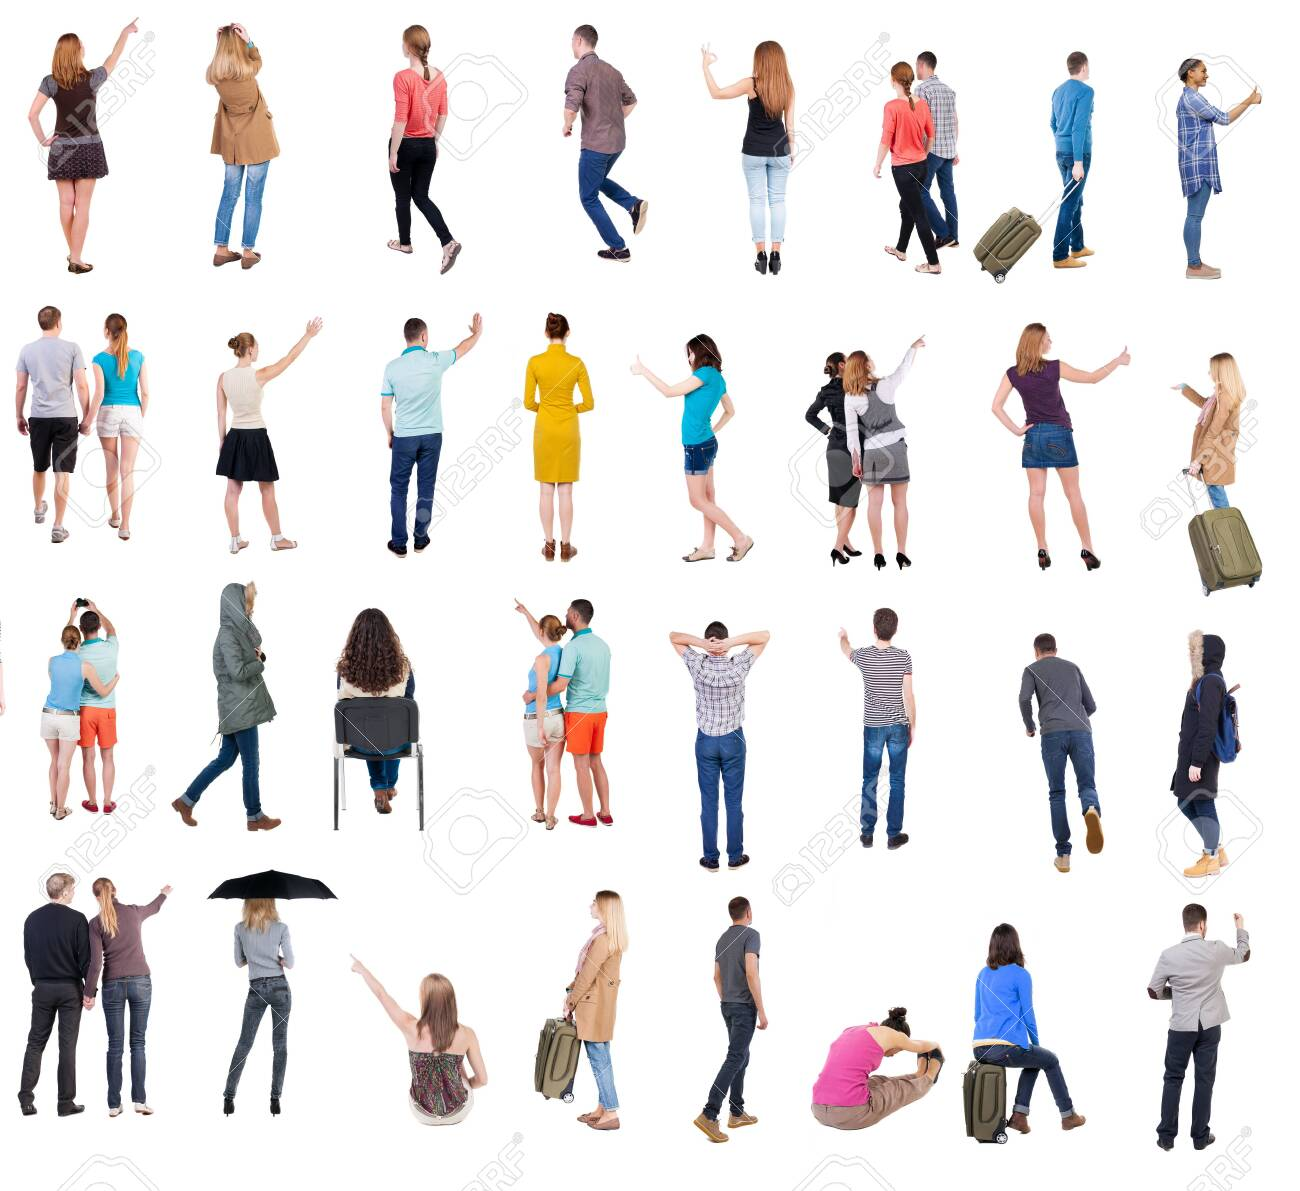 Collection Back view people. Rear view people set. backside view of person. Isolated over white background. many people standing with their backs. - 141049114